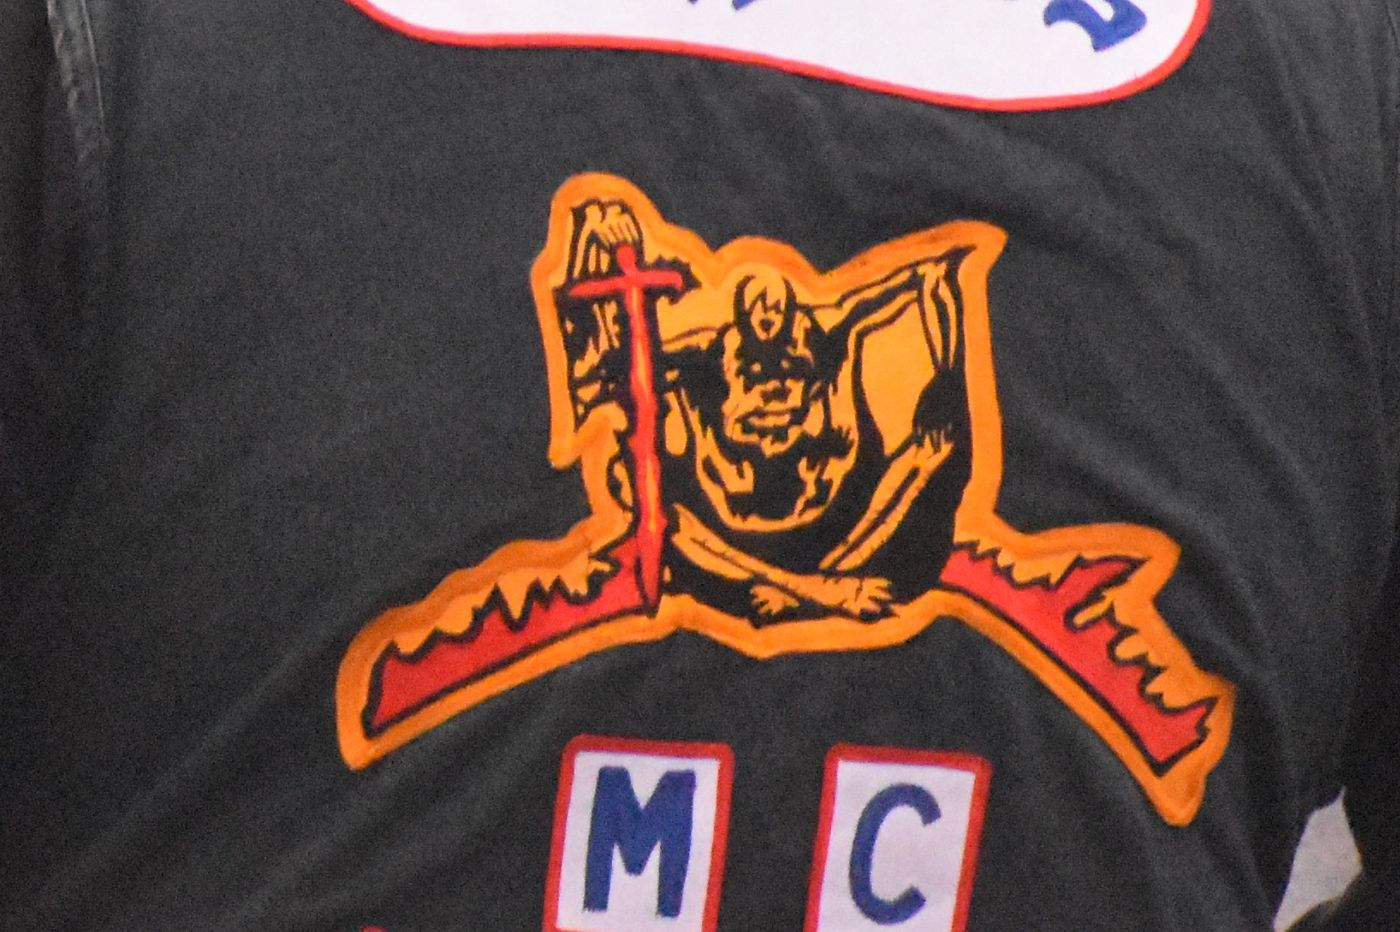 Pagans biker club's growing presence in New Jersey brings drugs, guns, violence, officials say